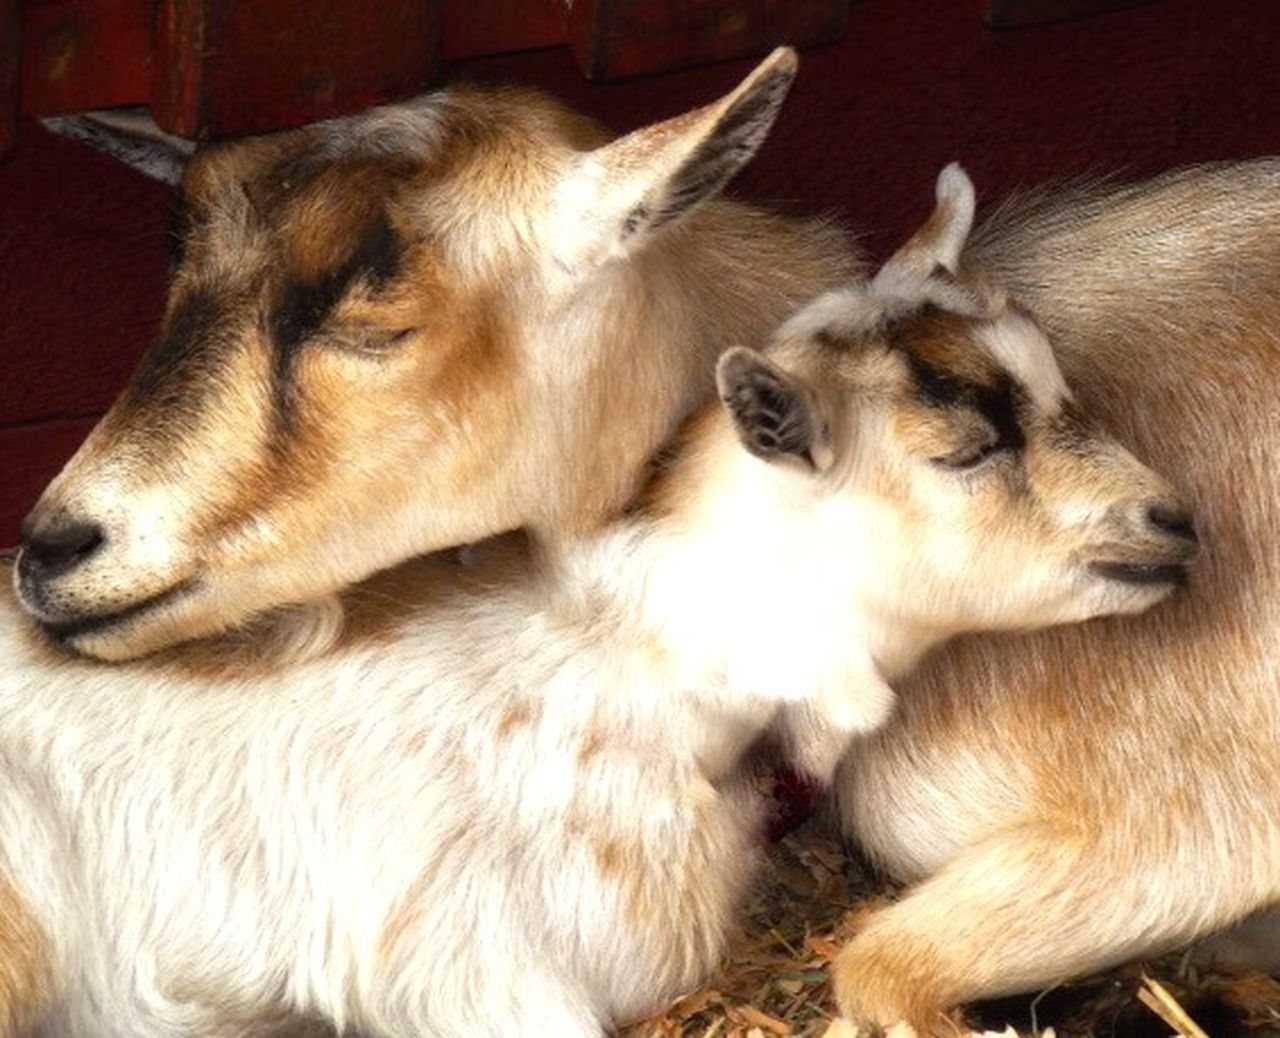 animal, animal themes, mammal, group of animals, domestic animals, pets, domestic, vertebrate, two animals, relaxation, young animal, no people, togetherness, livestock, close-up, indoors, resting, sleeping, animal body part, animal head, animal family, herbivorous